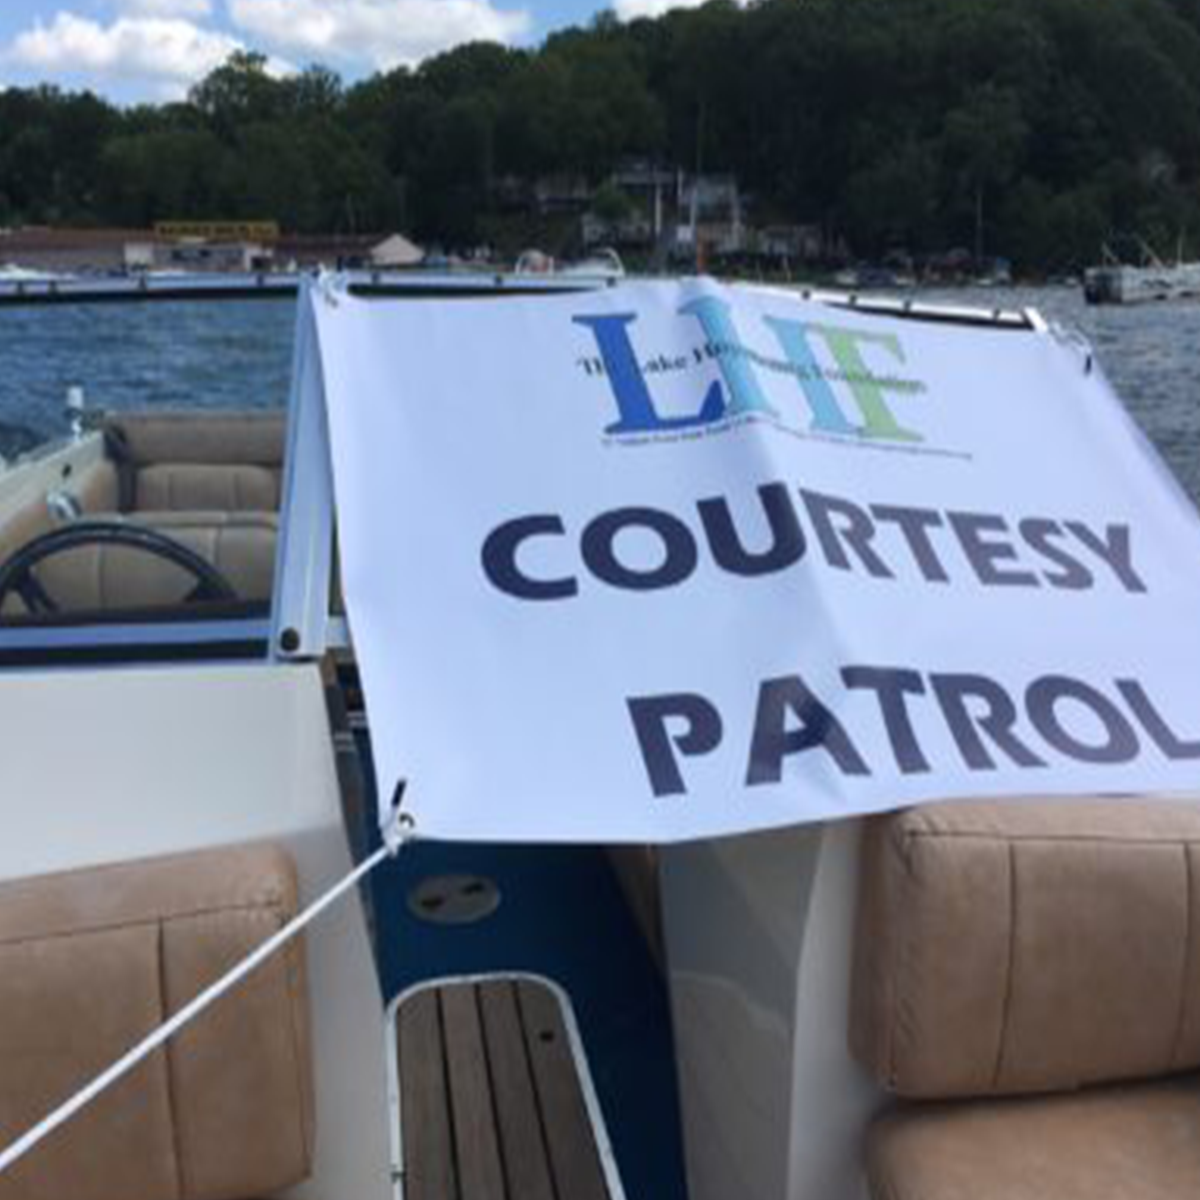 LHF Courtesy Patrol on the Boat